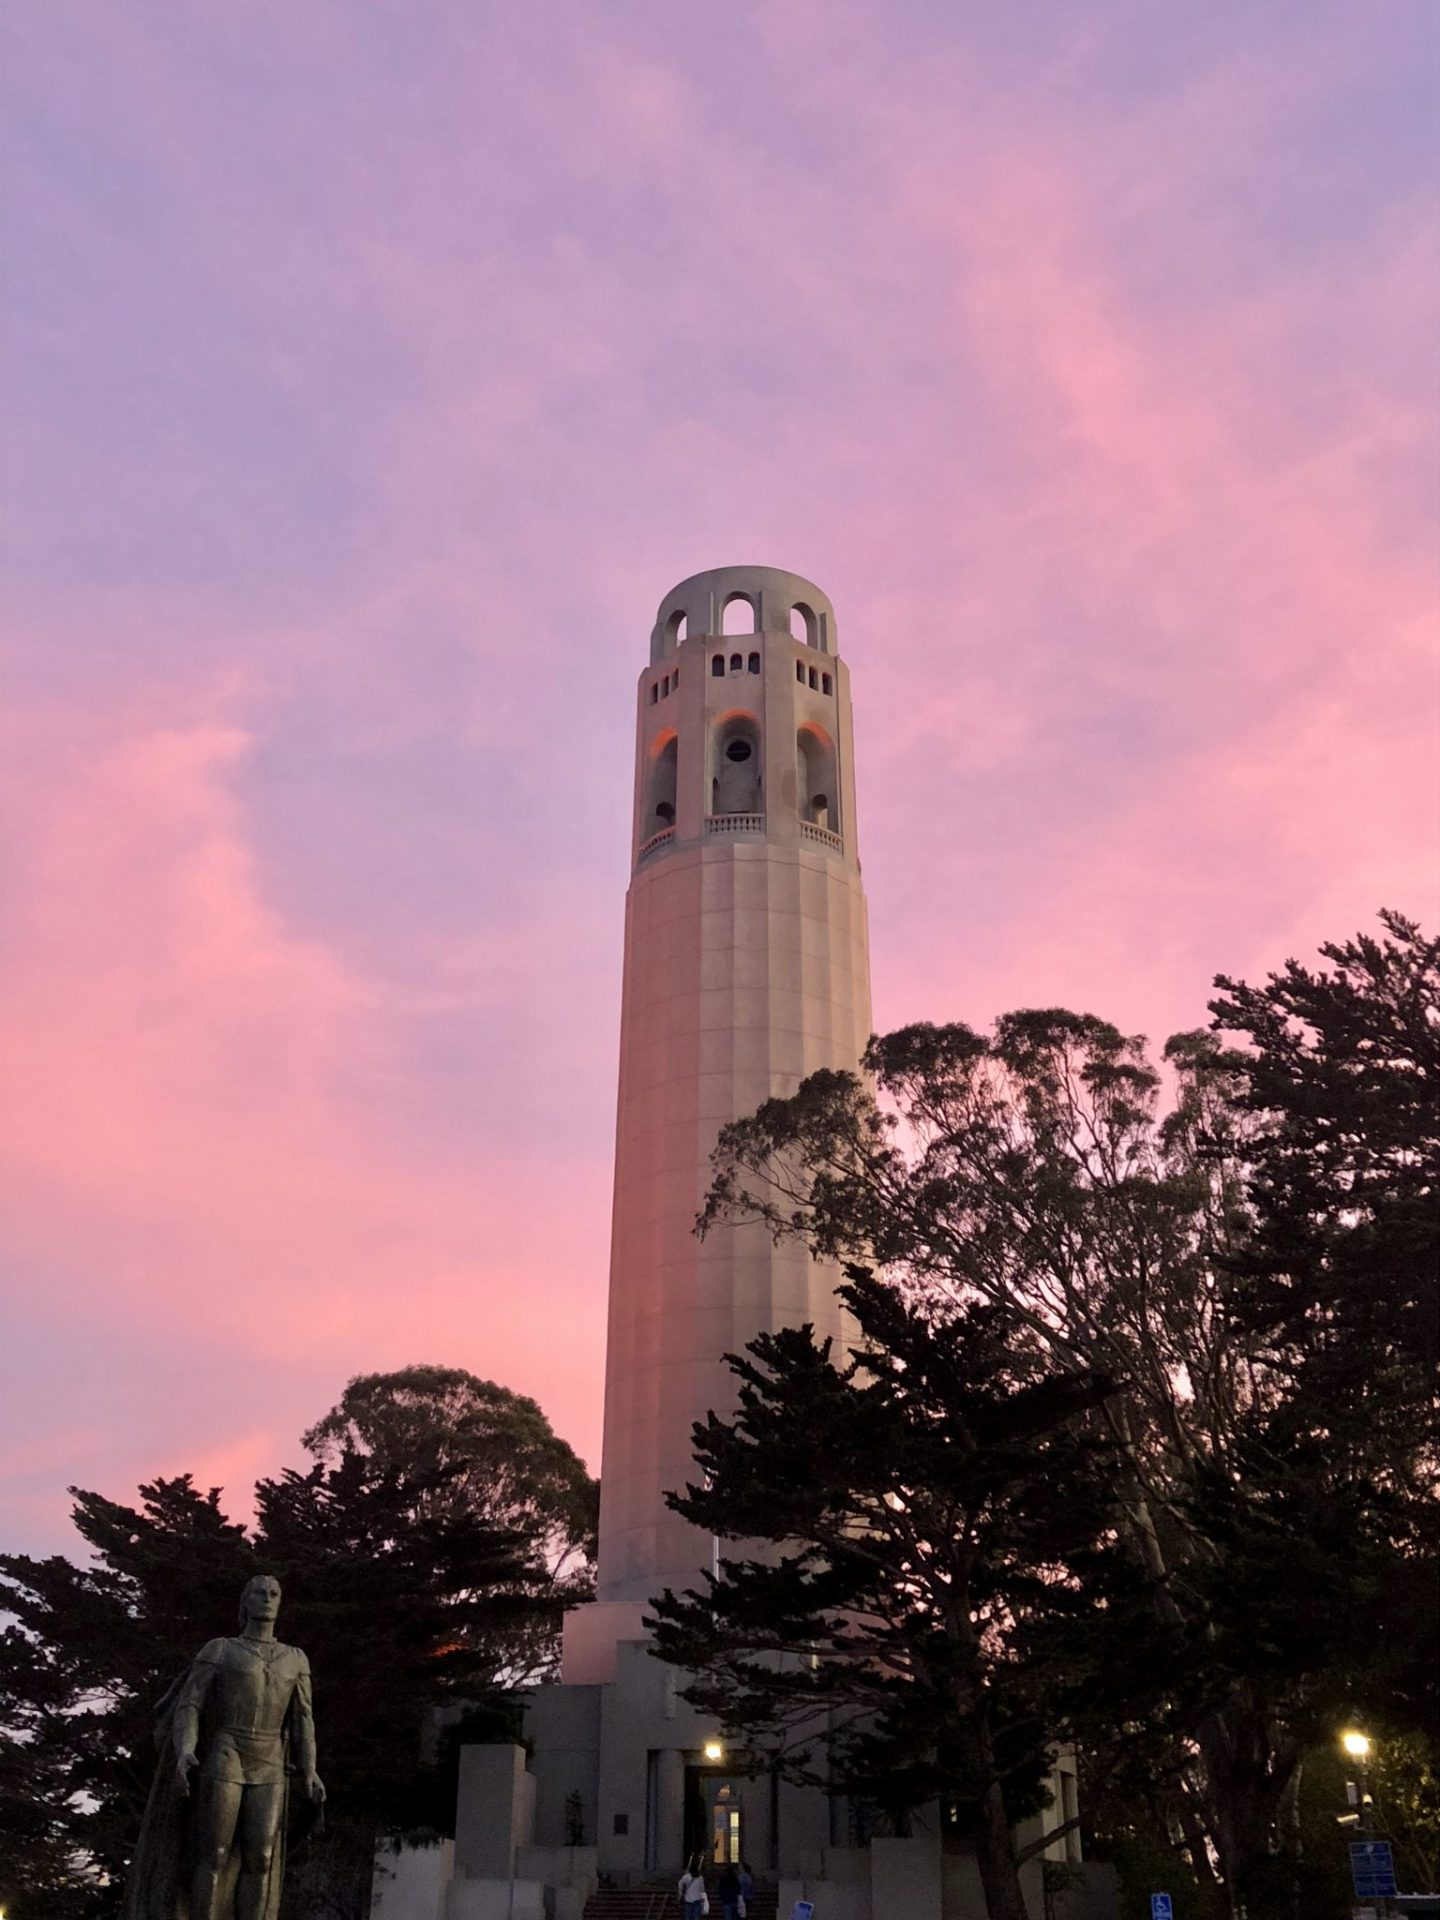 Pink skies over the Coit Tower, San Francisco